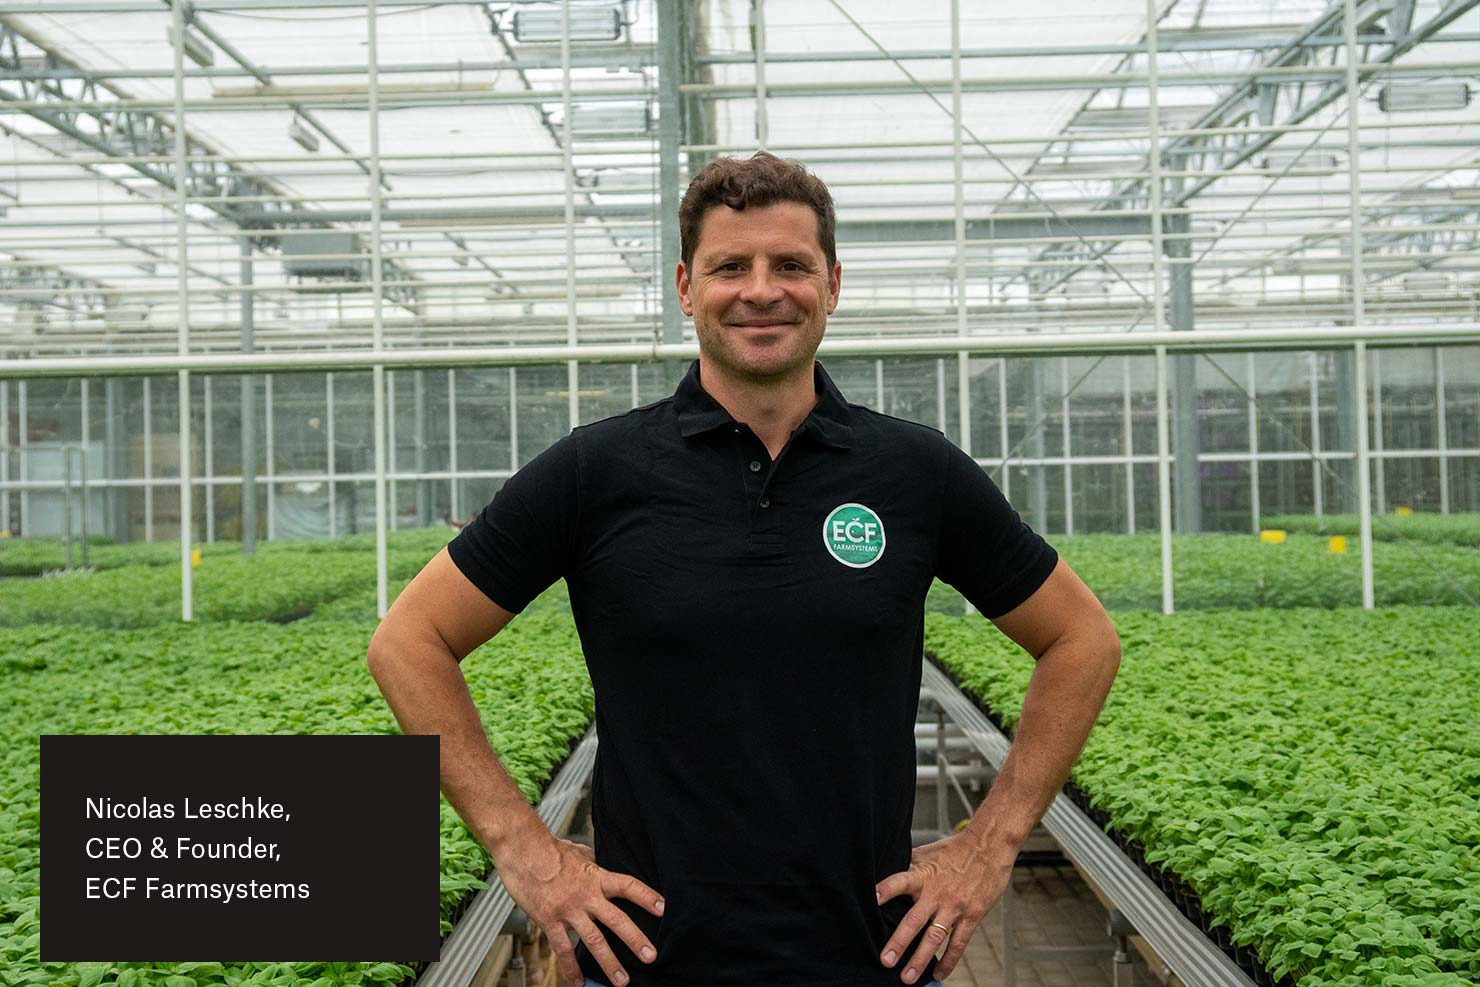 Nicolas Leschke, CEO and founder of ECF Farmsteads